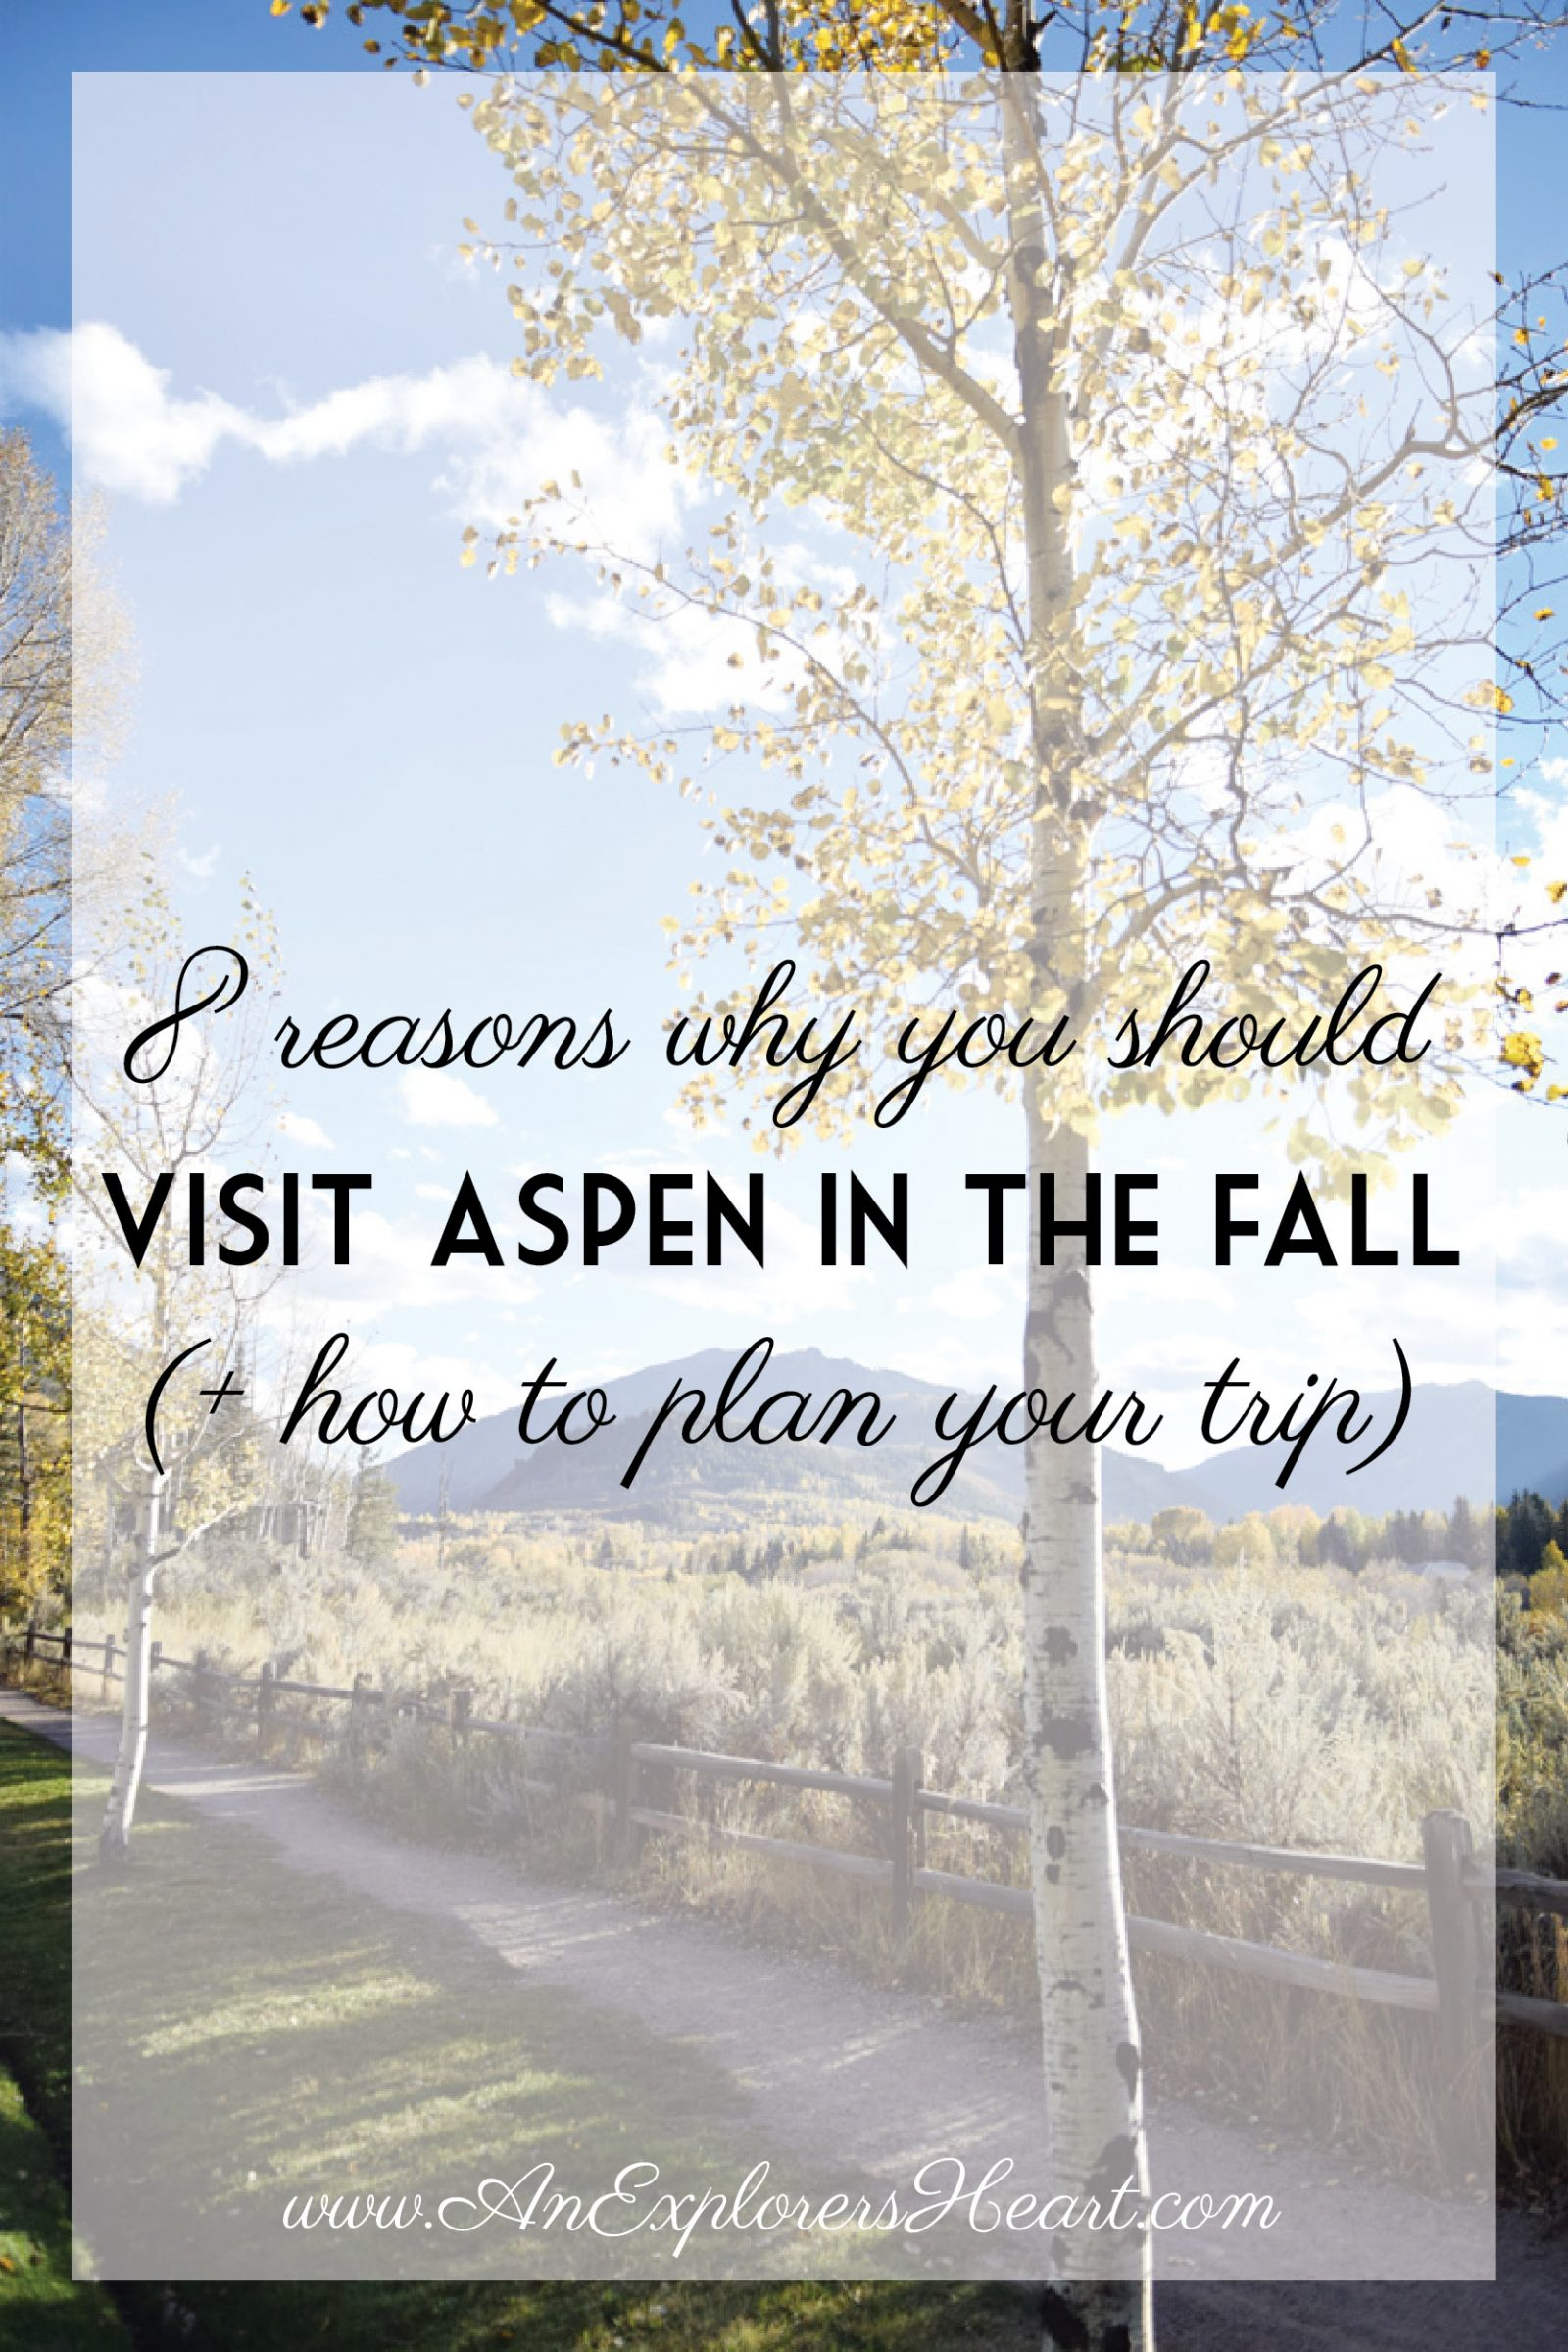 How to plan your trip to Aspen, Colorado this Fall